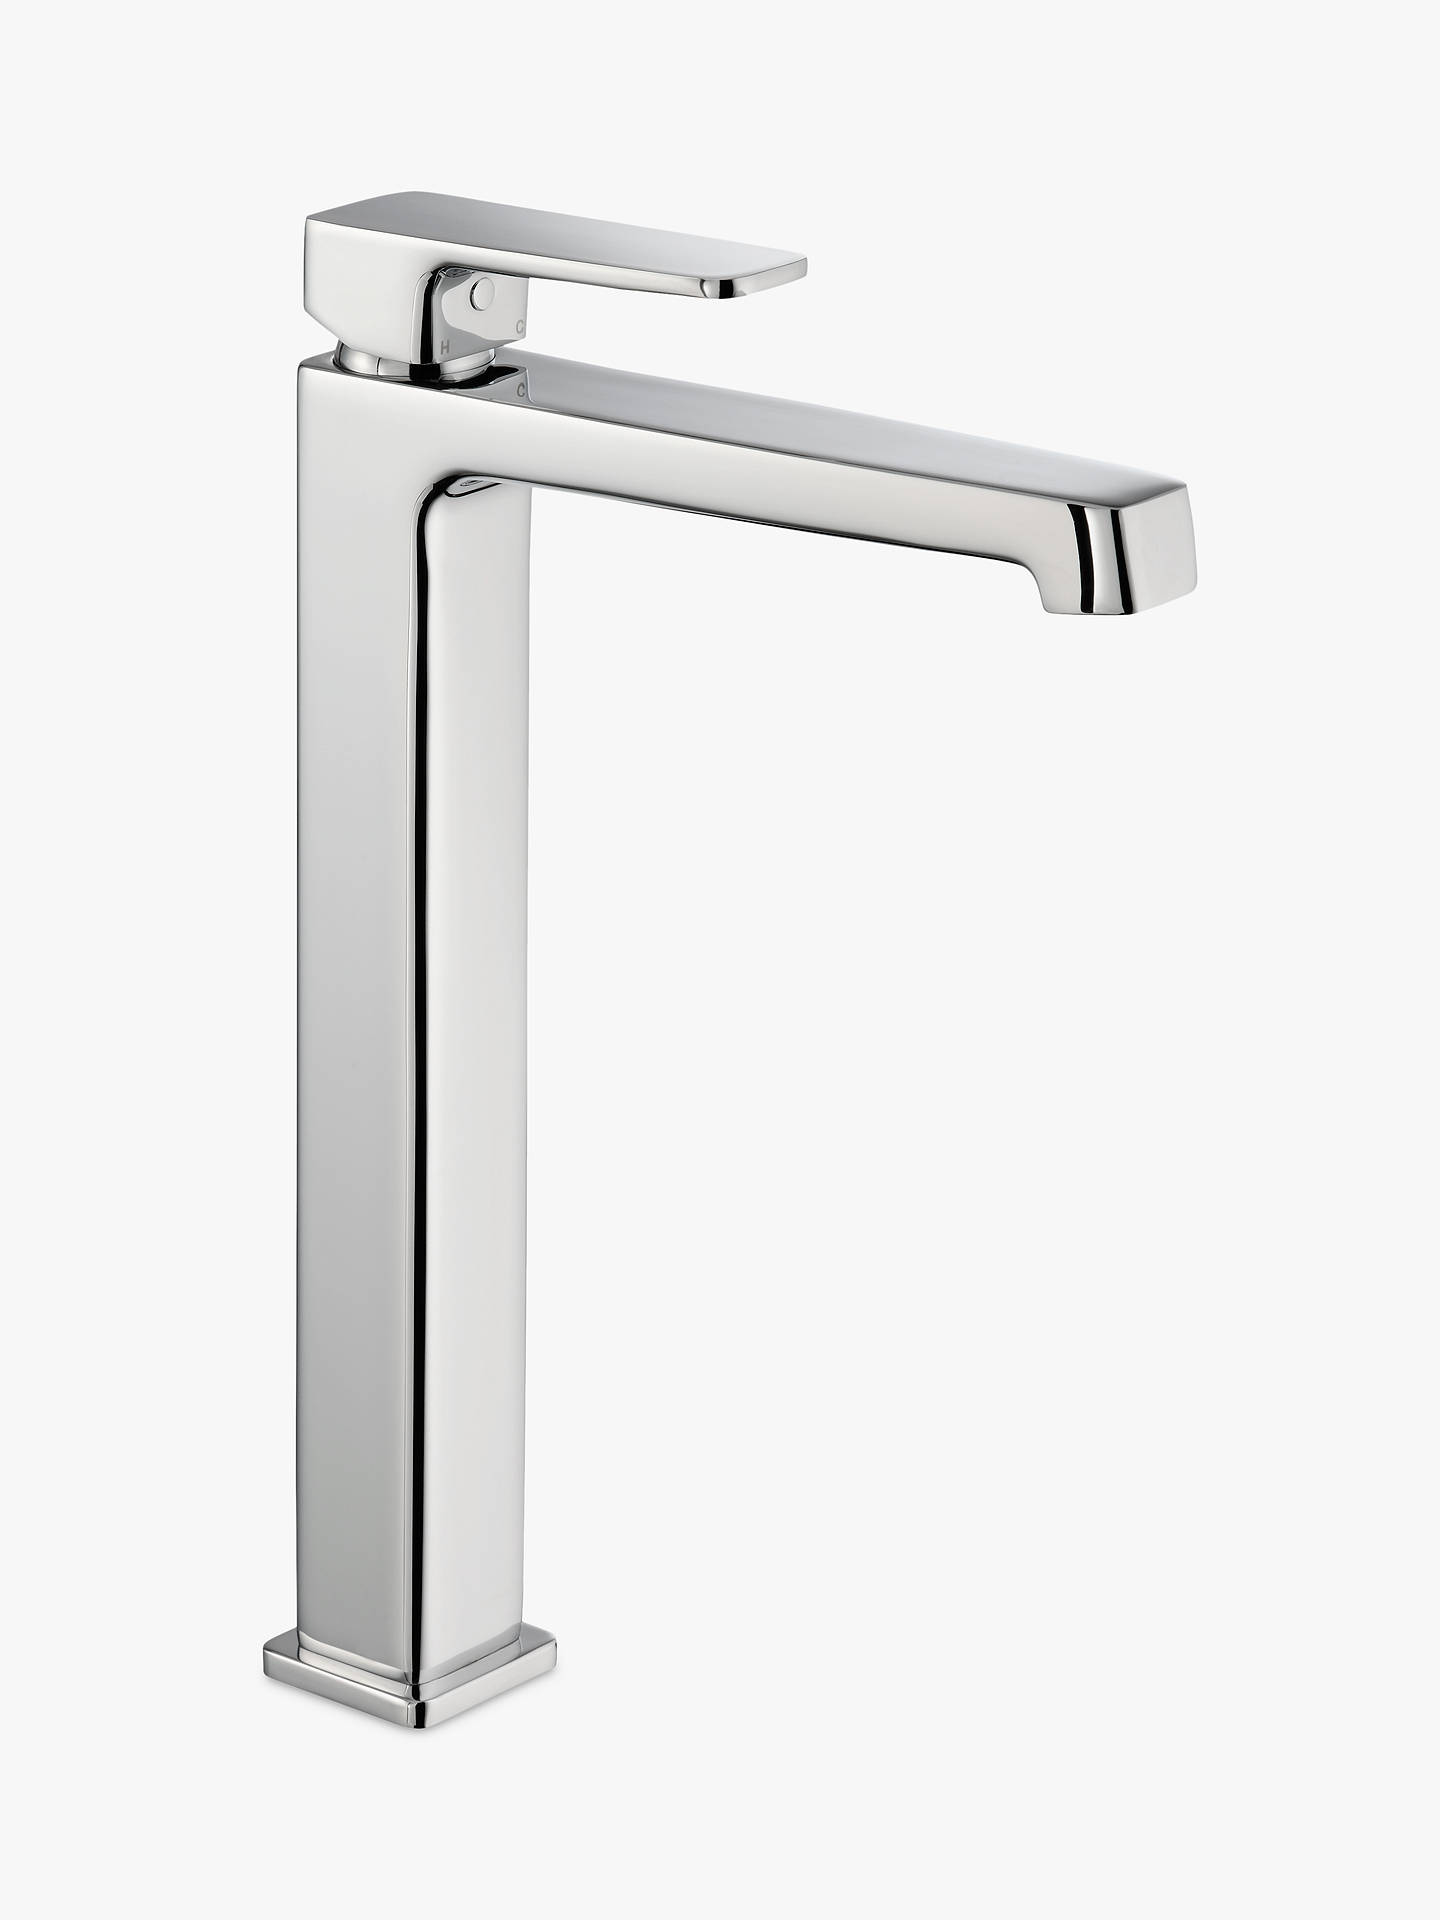 Buy John Lewis & Partners Spey Tall Basin Bathroom Monobloc Mixer Tap, Chrome Online at johnlewis.com